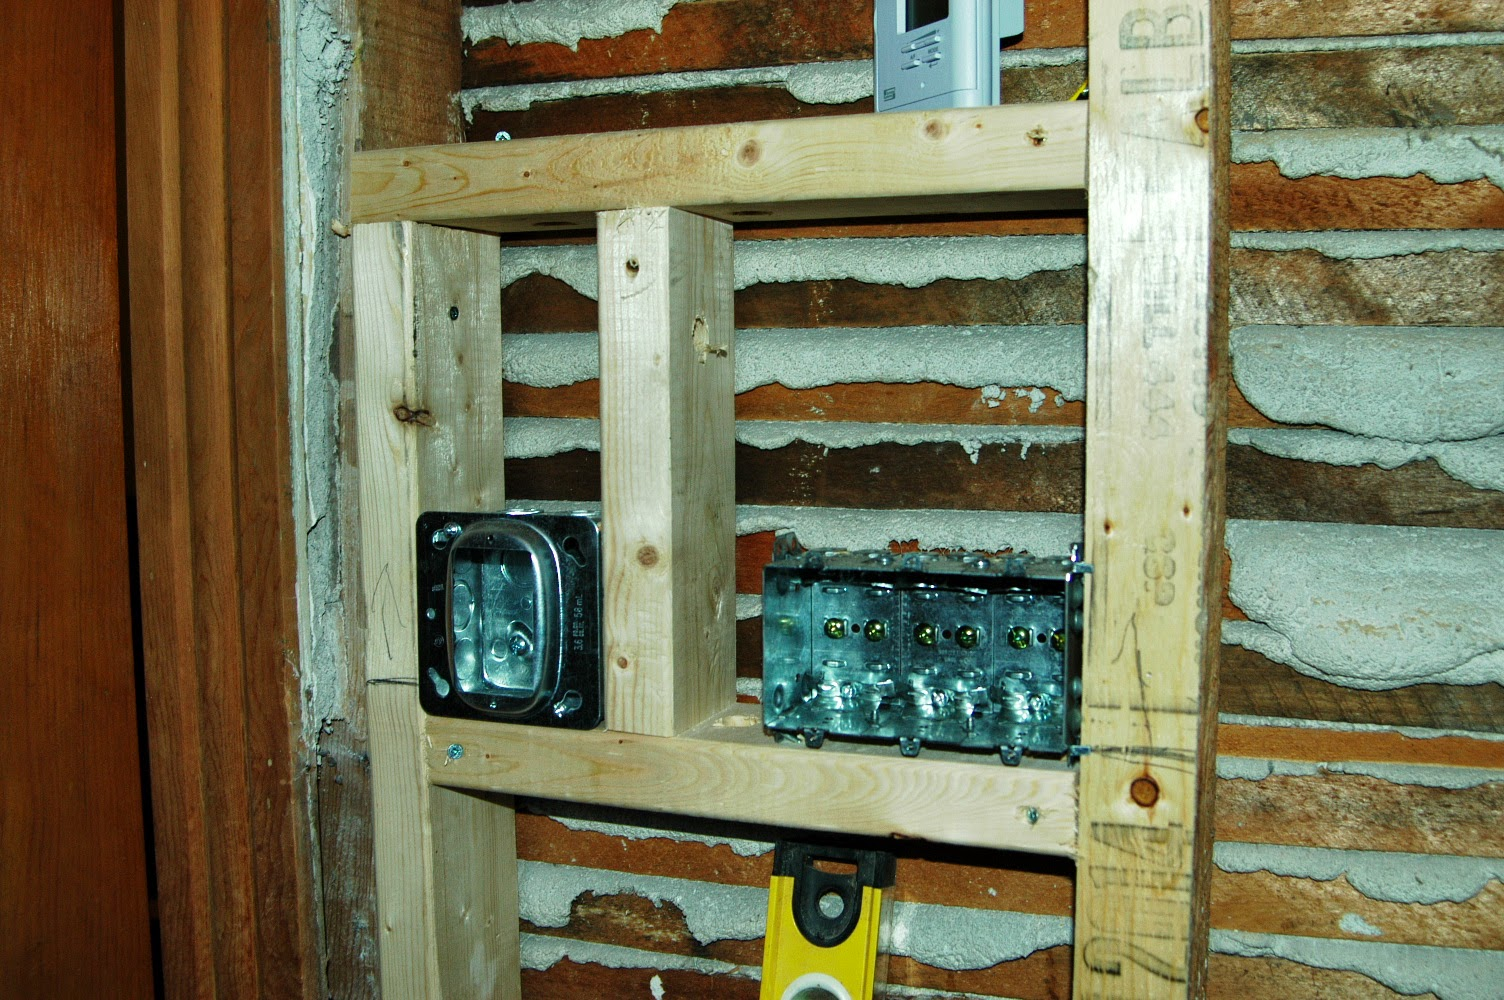 Electrical Wiring For Gfci And 3 Switches In Bathroom Home